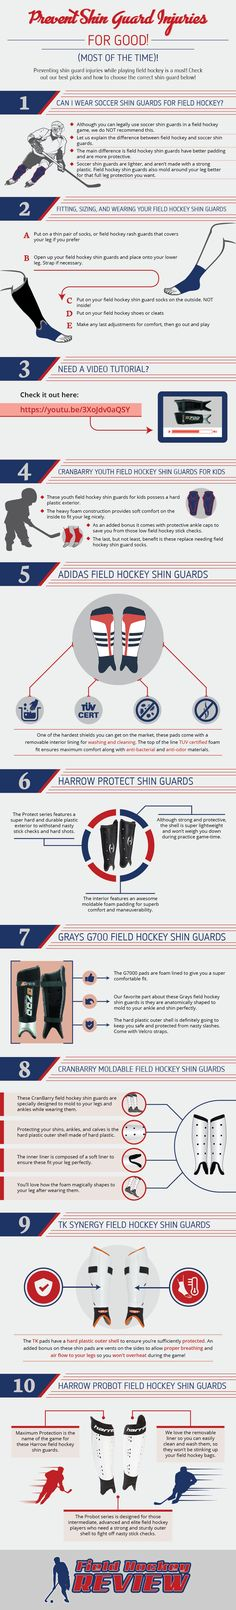 A Guide To Buying The Perfect Shin Guard - Infographic